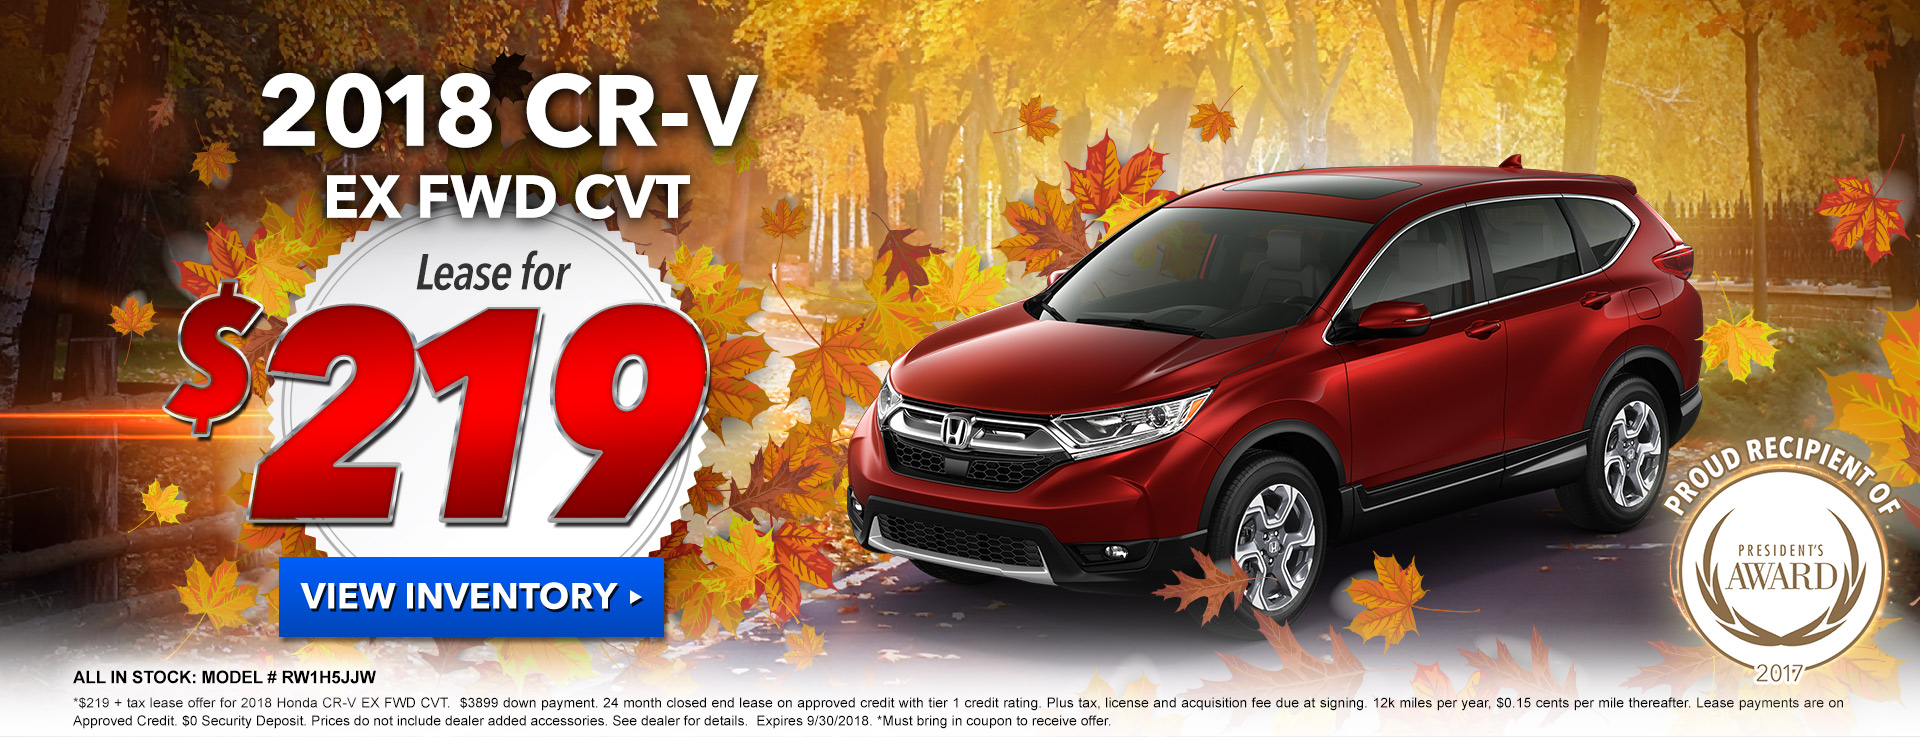 Honda CR-V $219 Lease